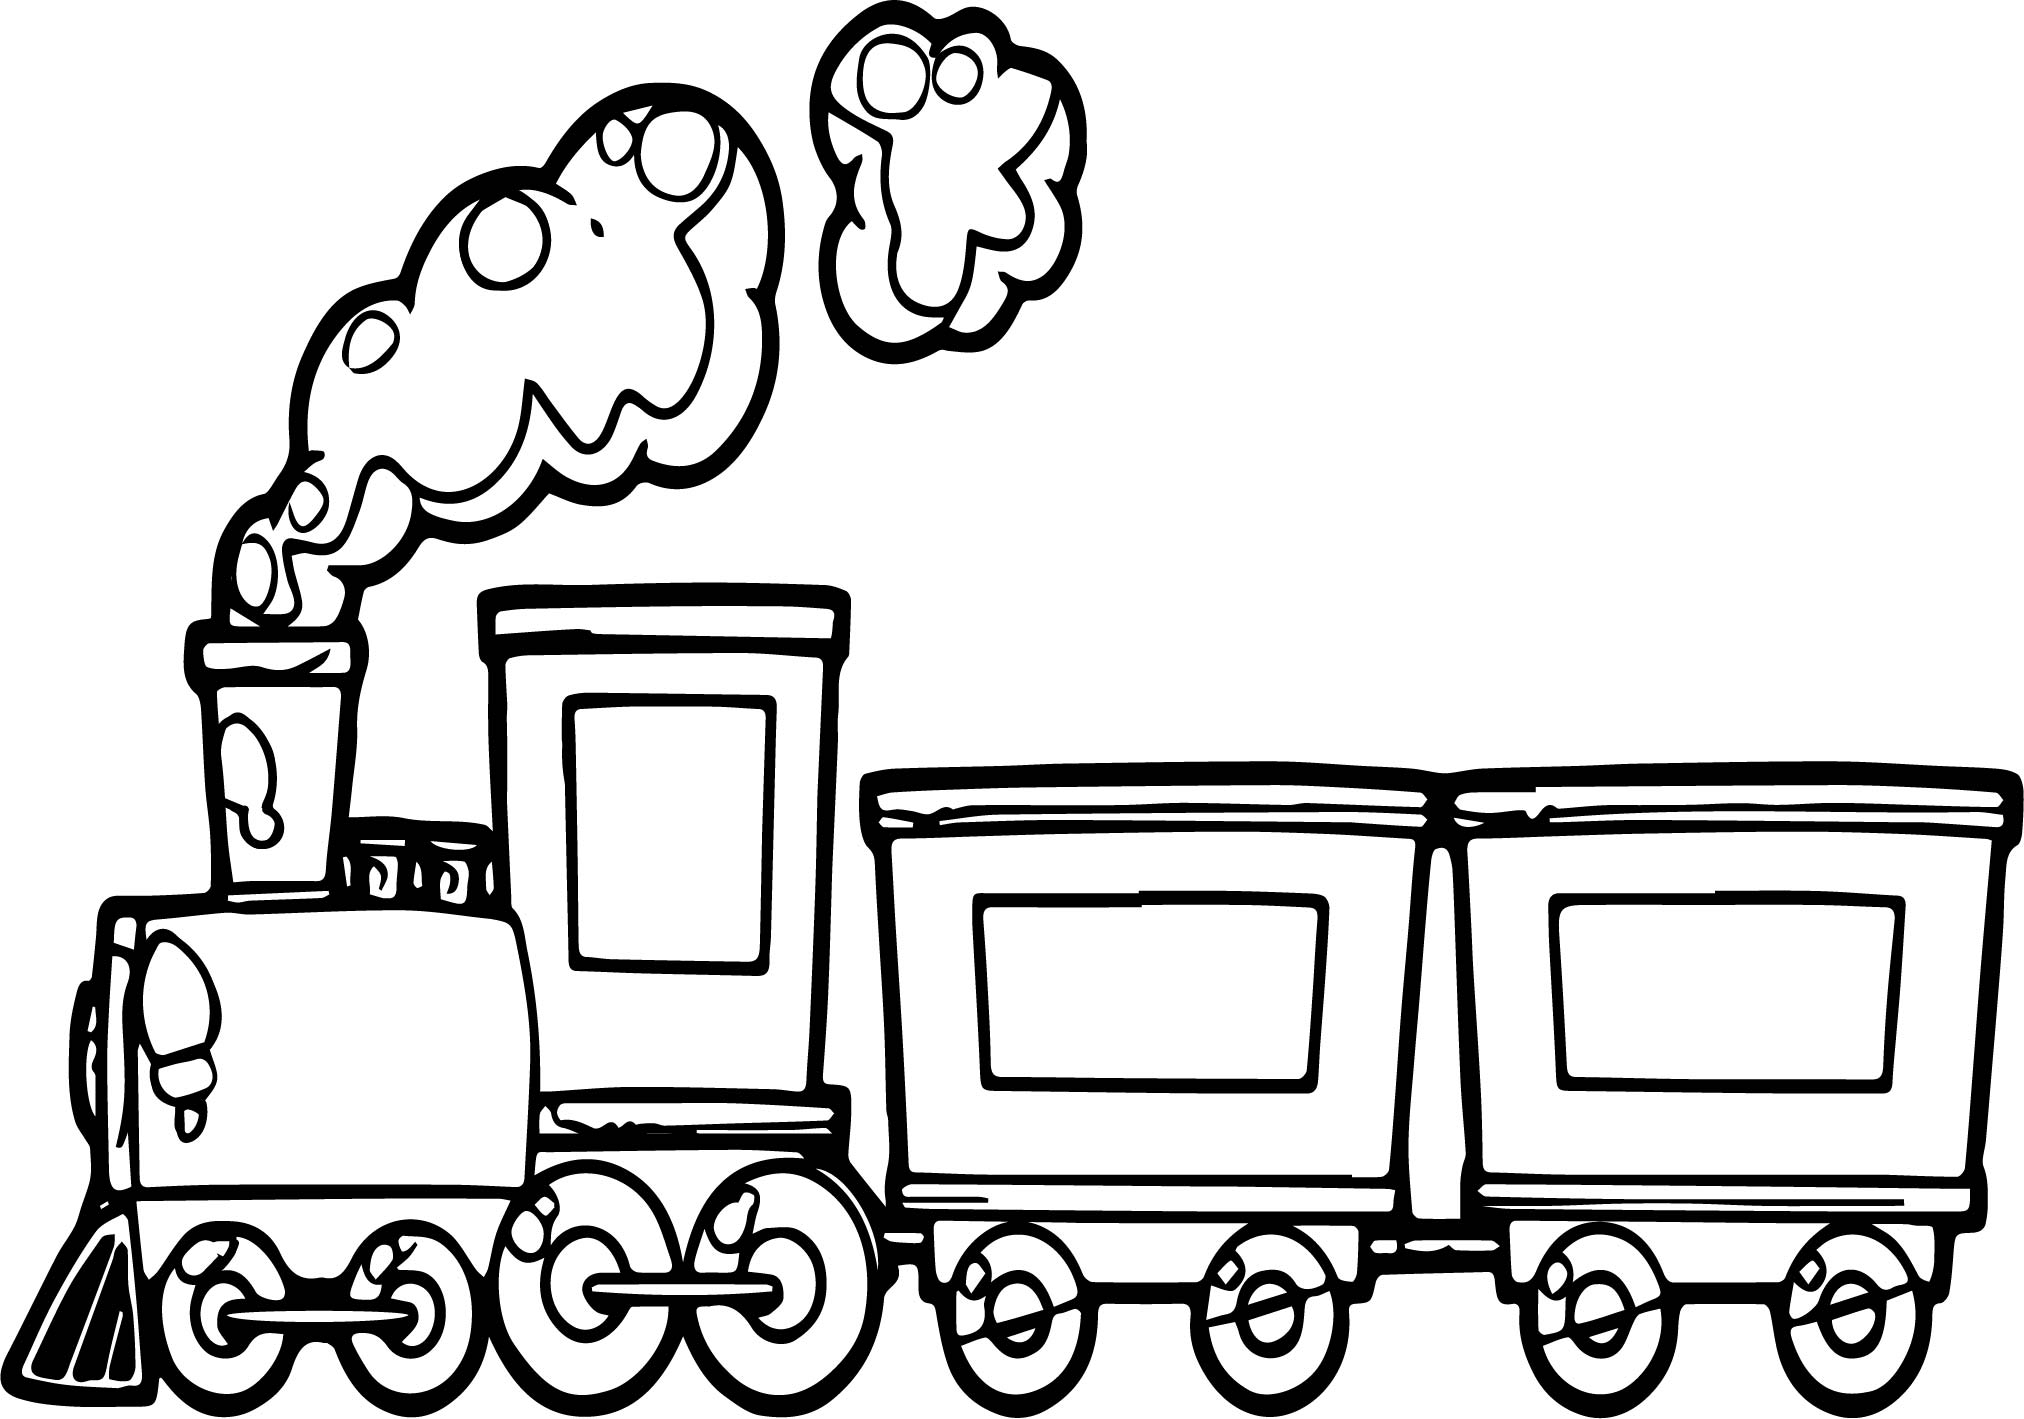 funny cartoon train coloring page - Train Coloring Pages